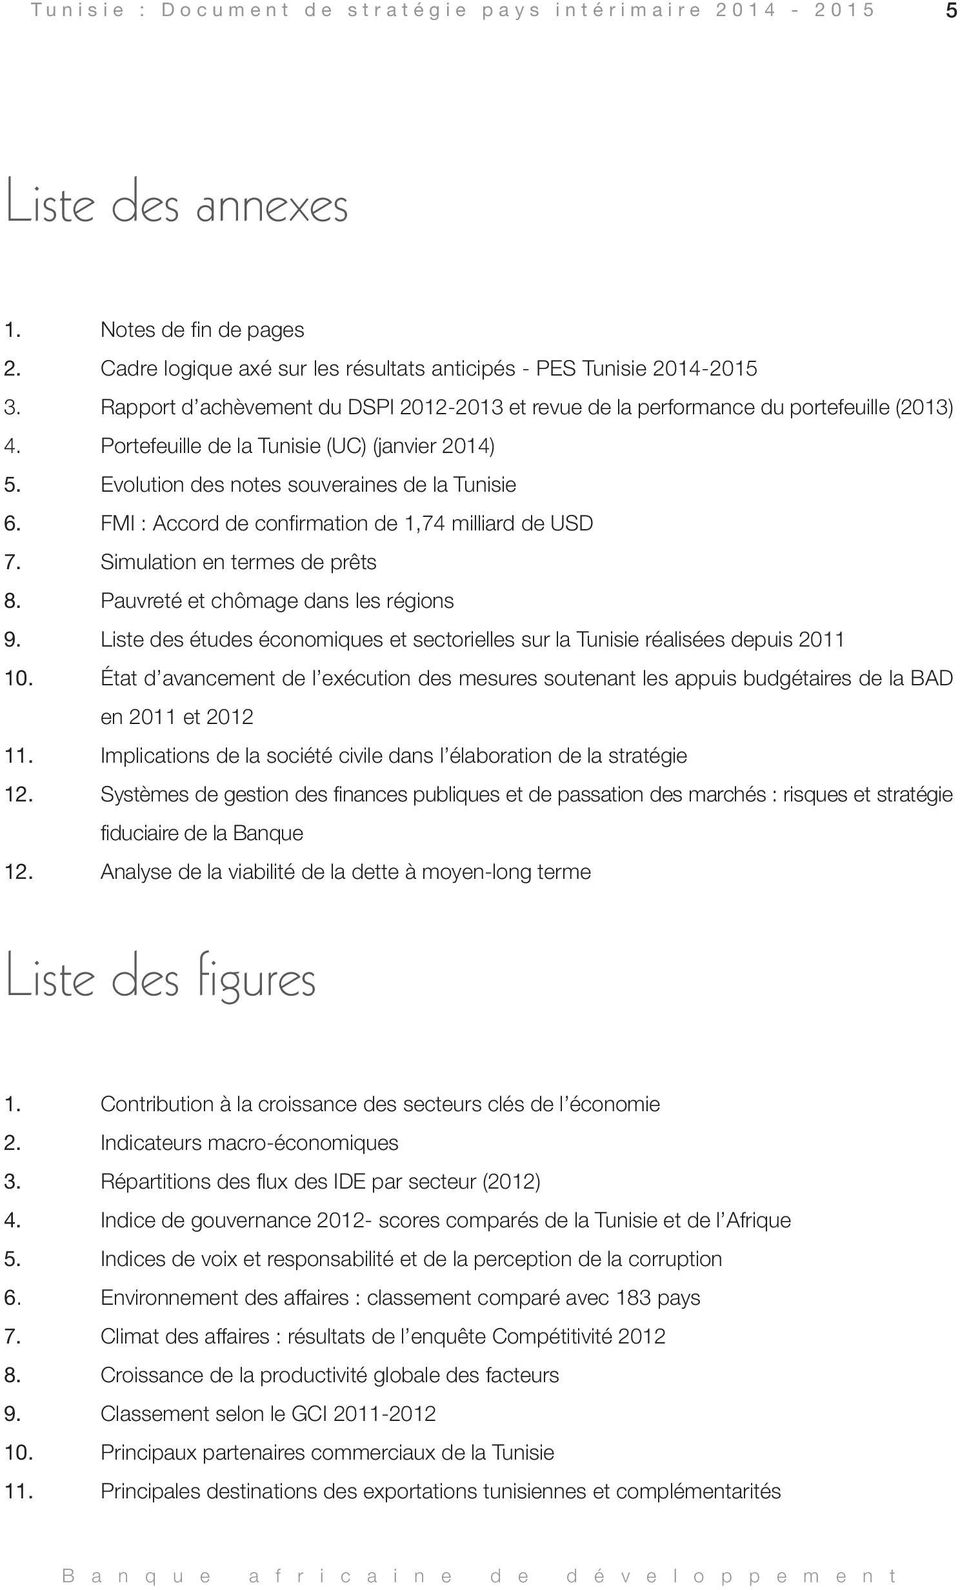 Portefeuille de la Tunisie (UC) (janvier 2014) 5. Evolution des notes souveraines de la Tunisie 6. FMI : Accord de confirmation de 1,74 milliard de USD 7. Simulation en termes de prêts 8.